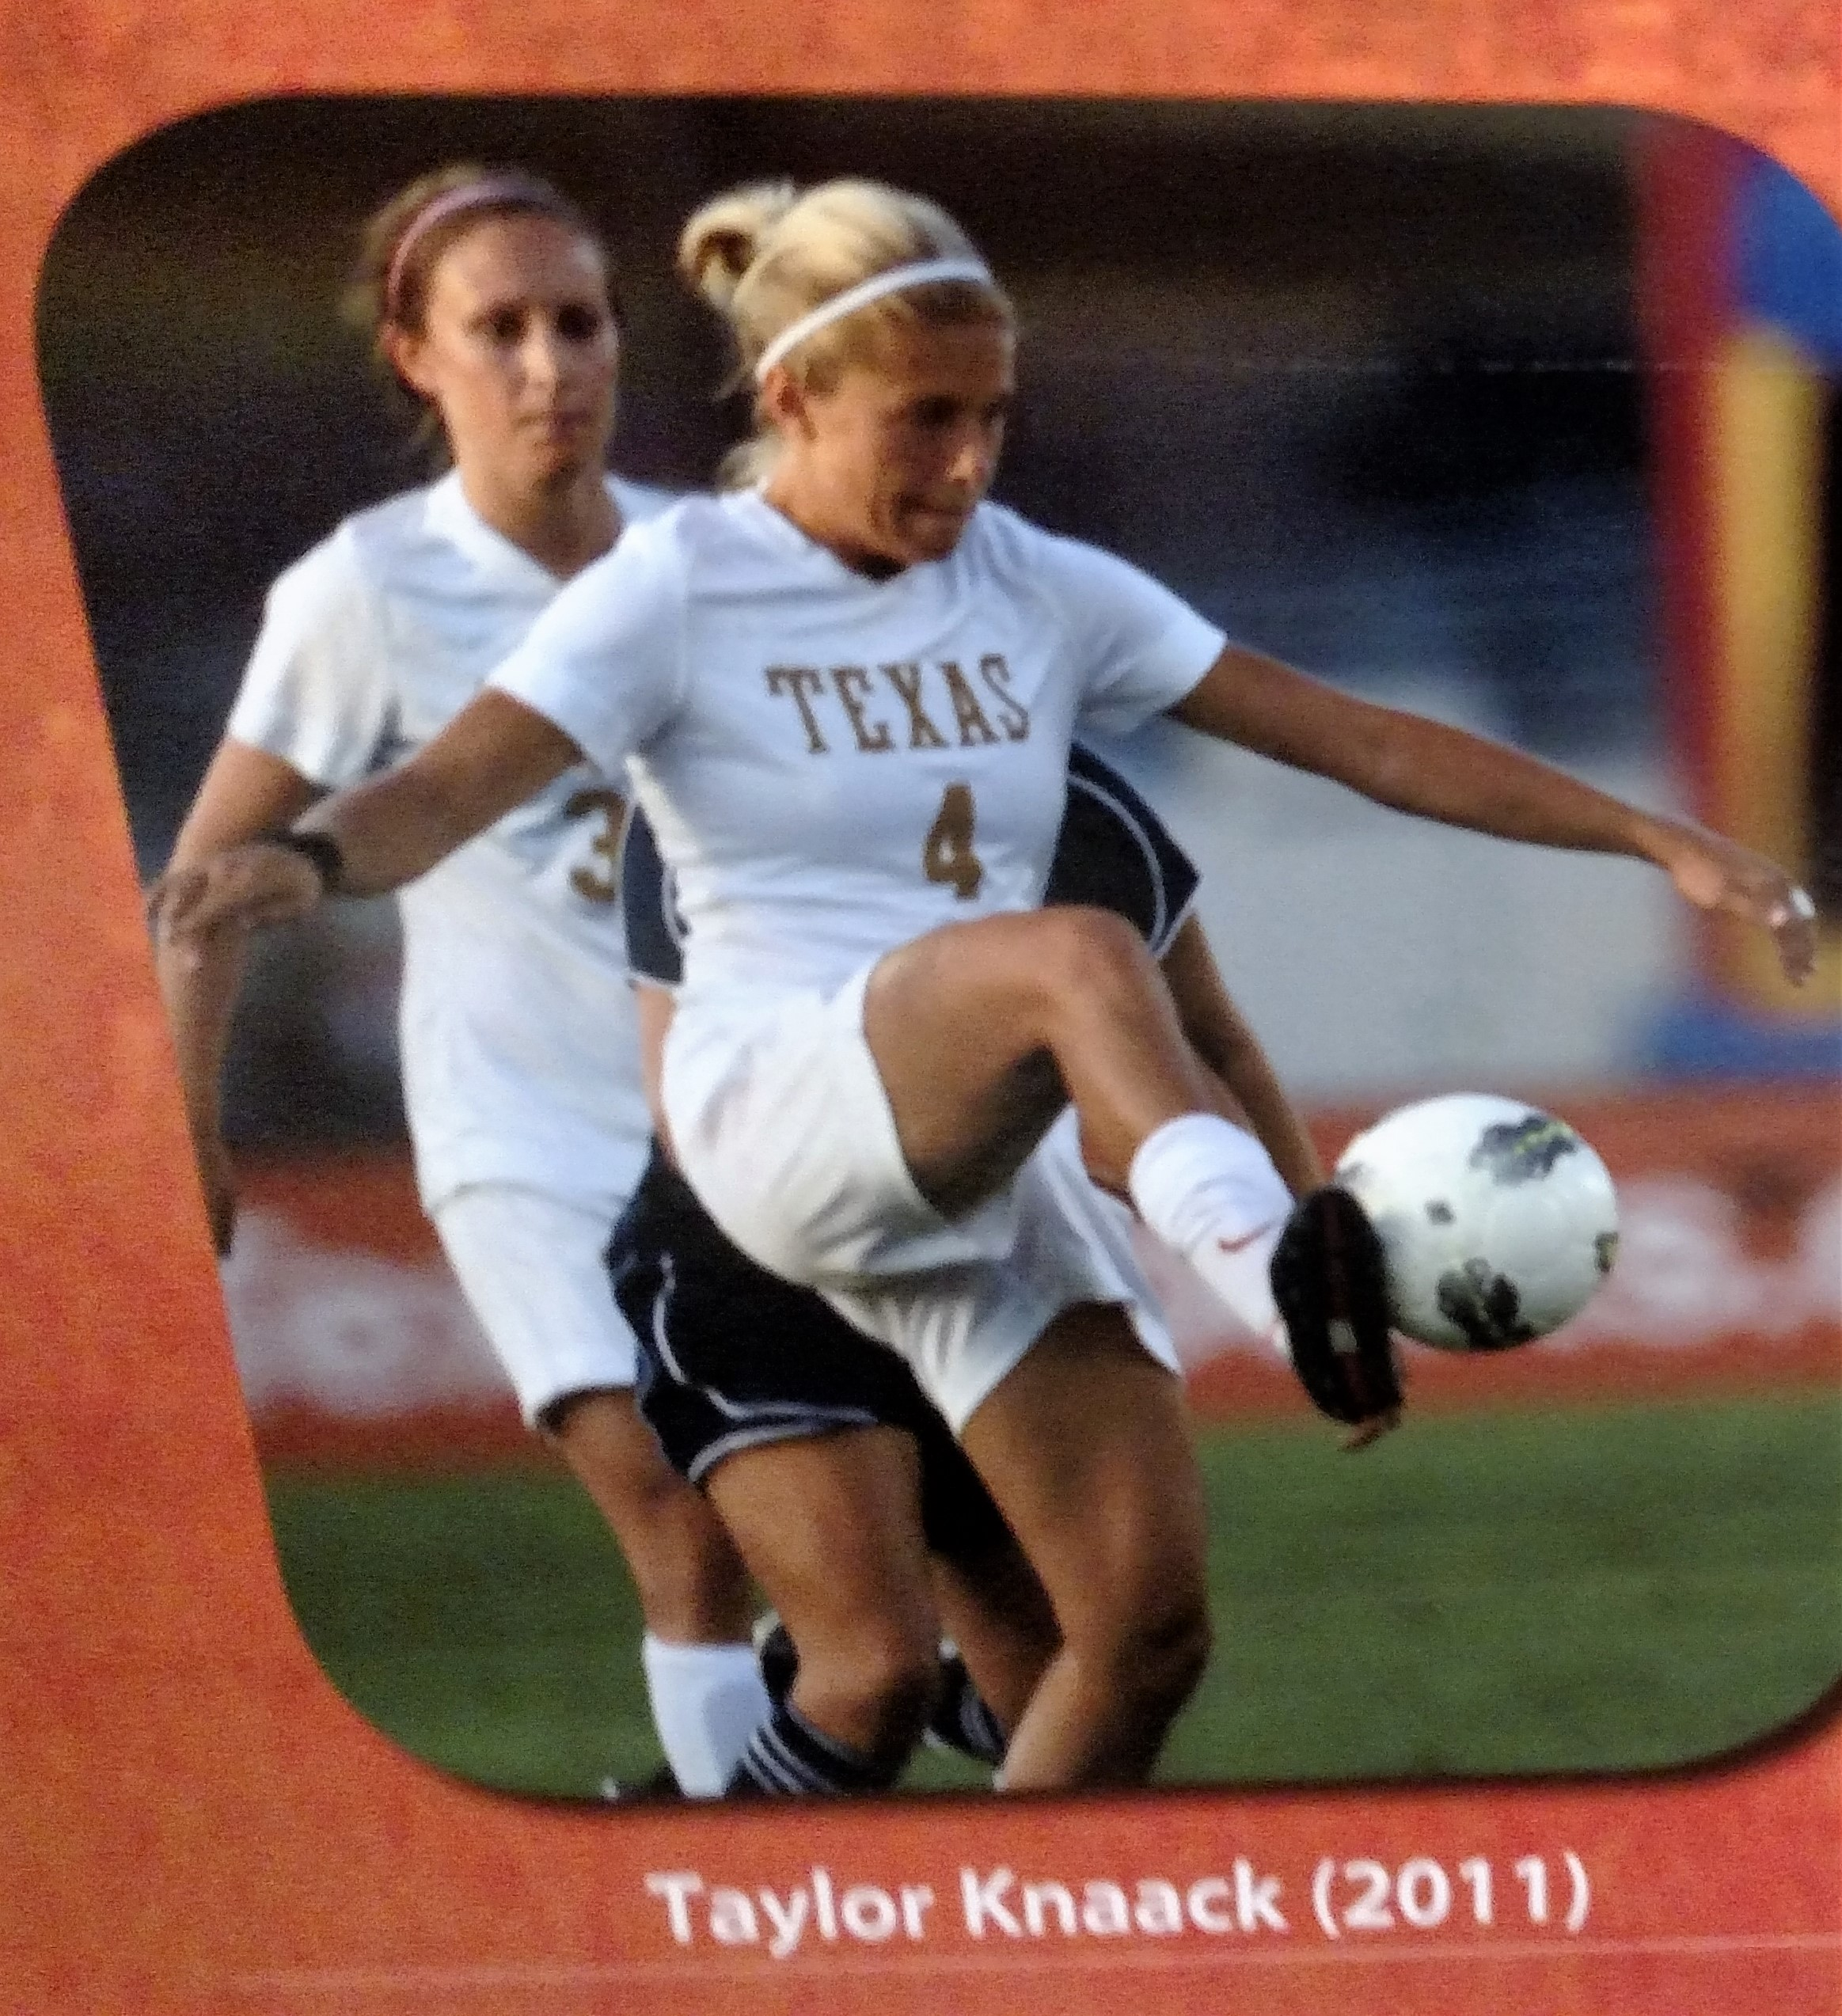 Taylor Knaack- All Newcomer team